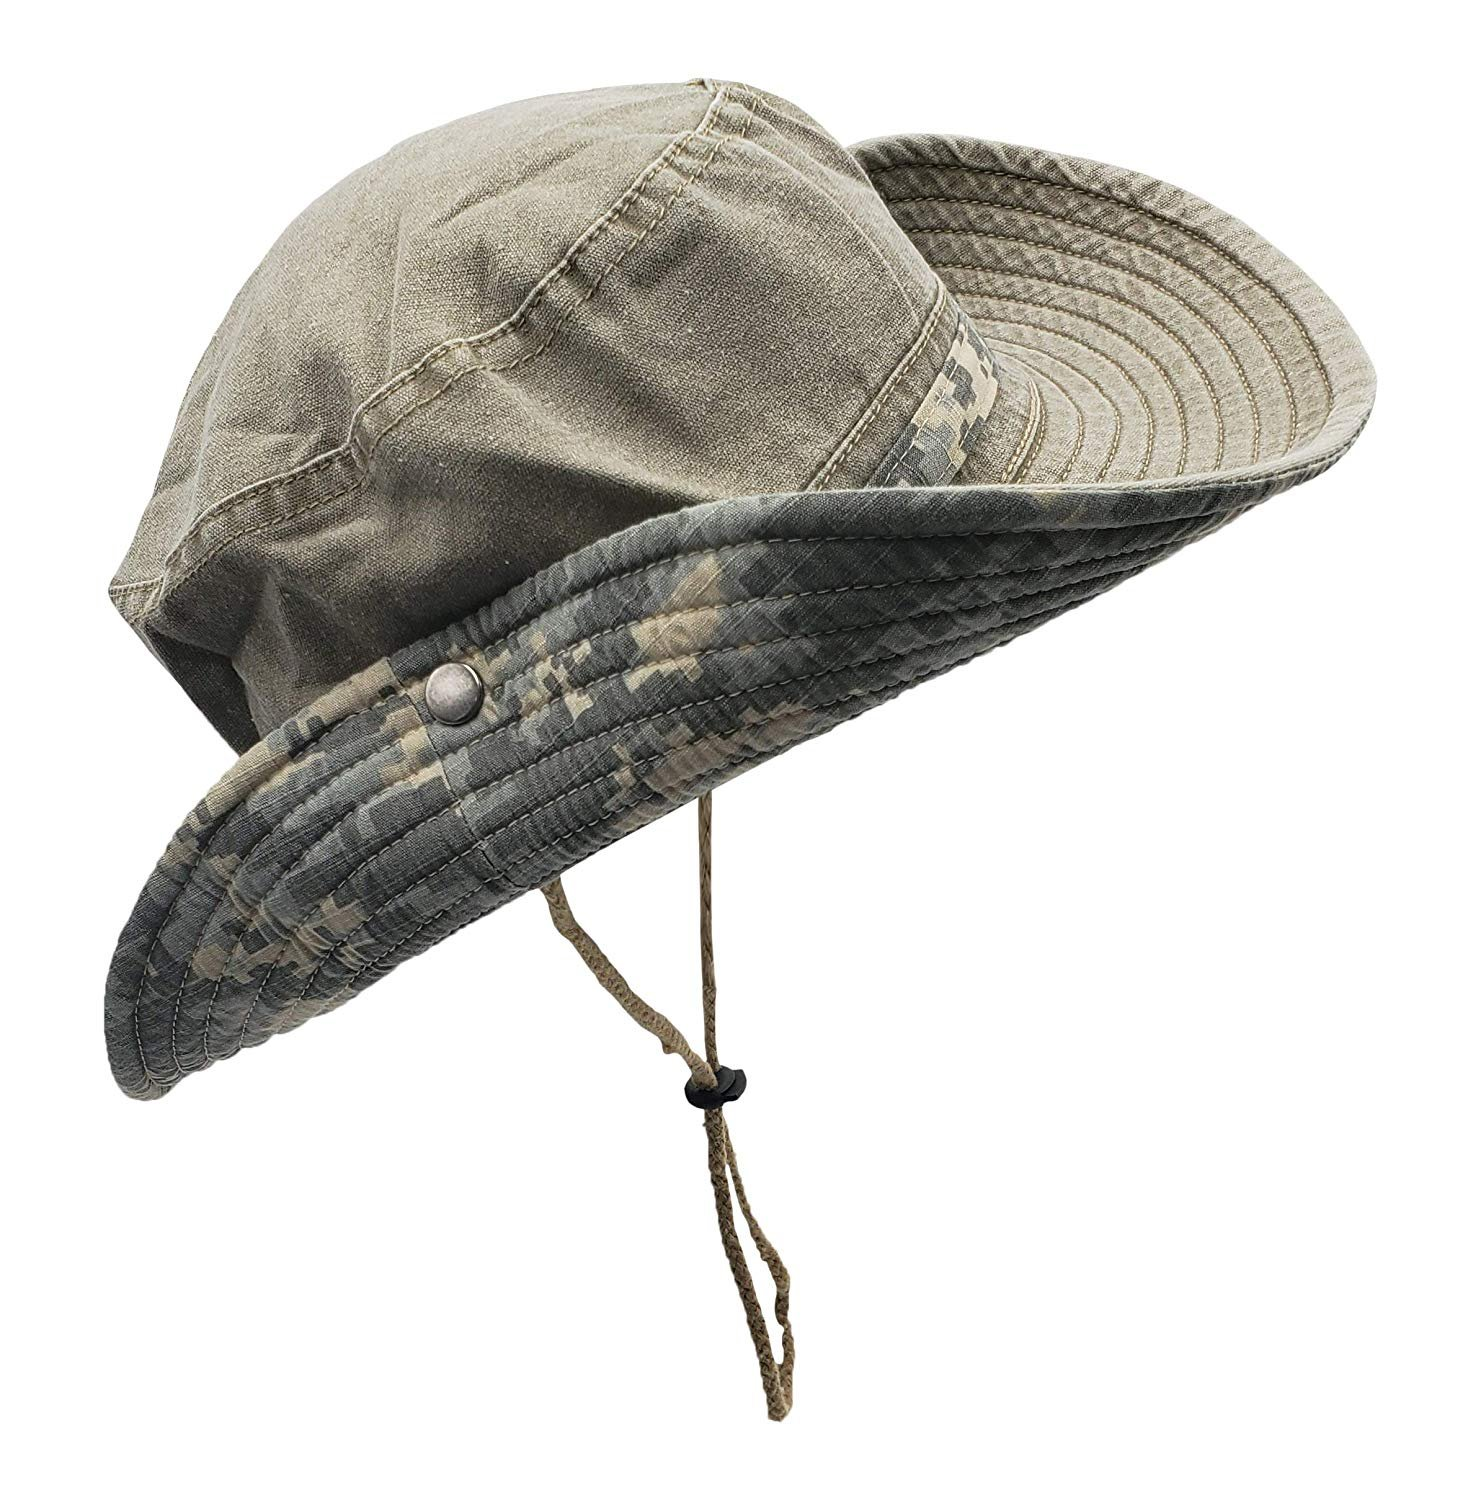 Camping Operator Floppy Military Sun Cap for Men or Women Outdoor Summer Bucket Hat for Hiking Fishing